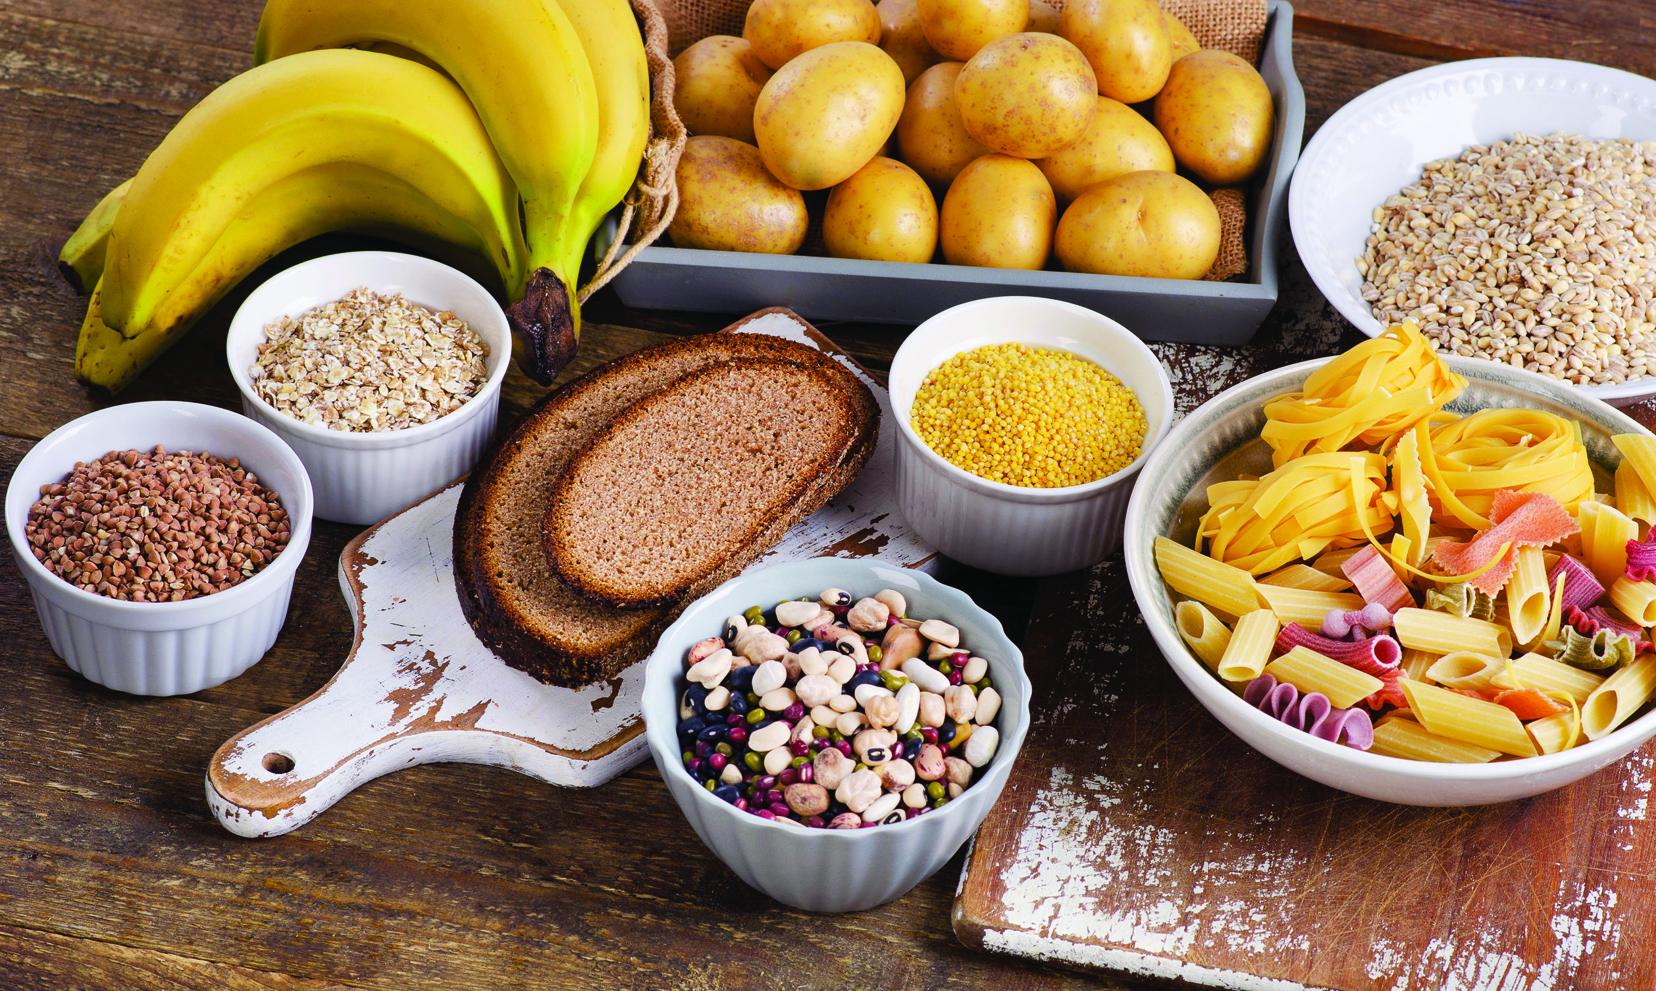 53650352 – Foods High In Carbohydrate On Wooden Table. Top View